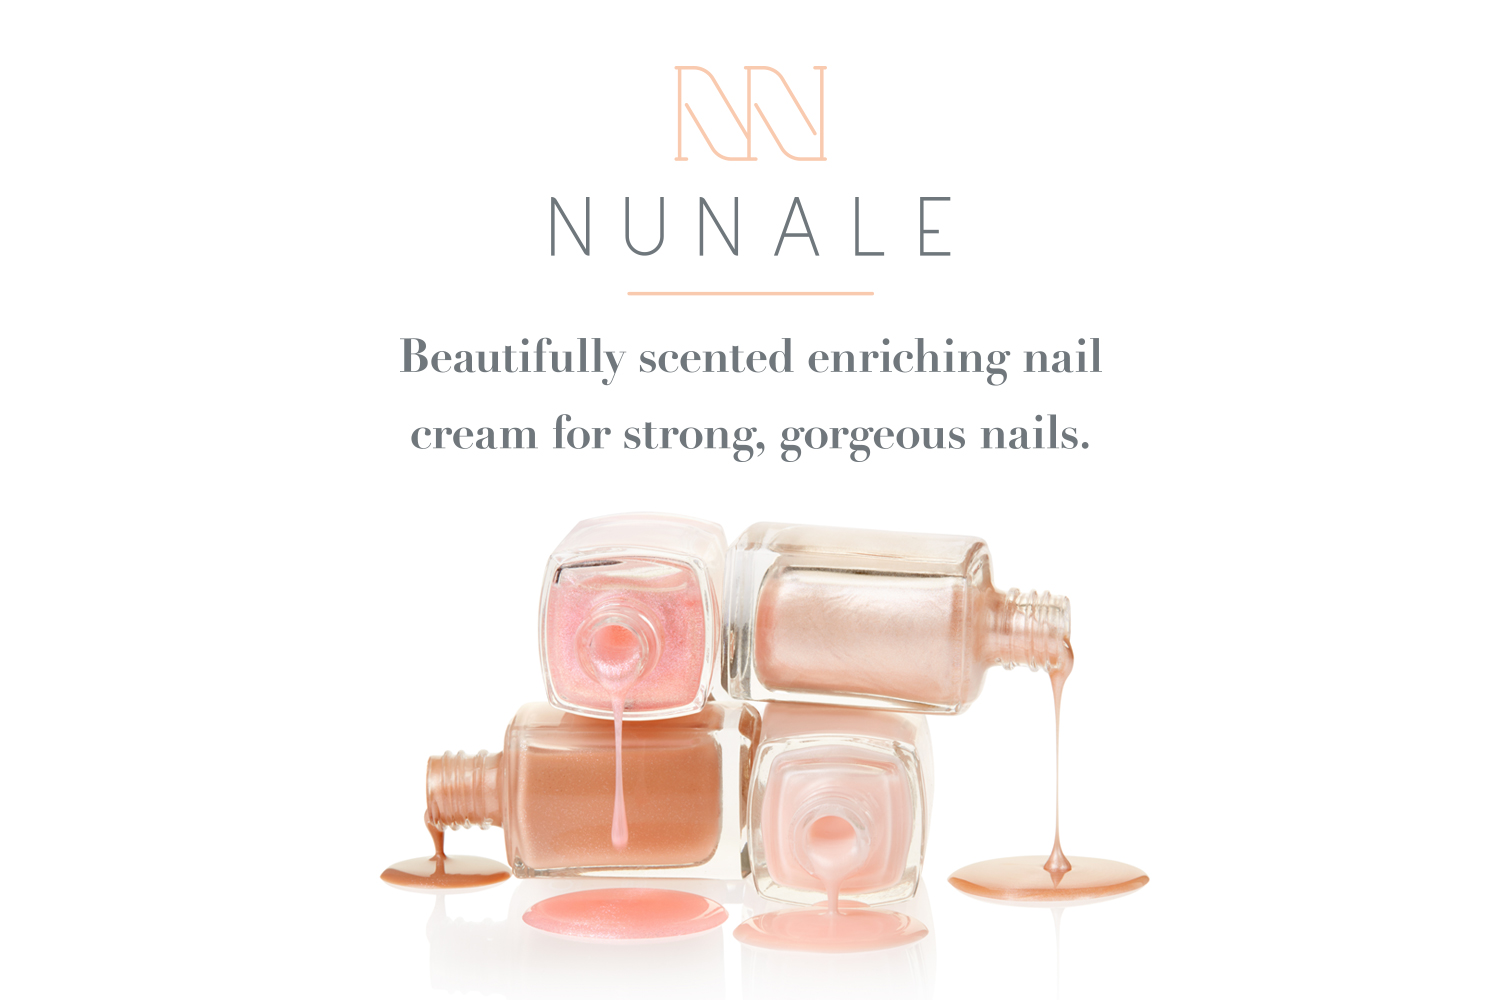 NuNale logo design, brand identity and packaging design by Ditto Creative, branding agency Kent